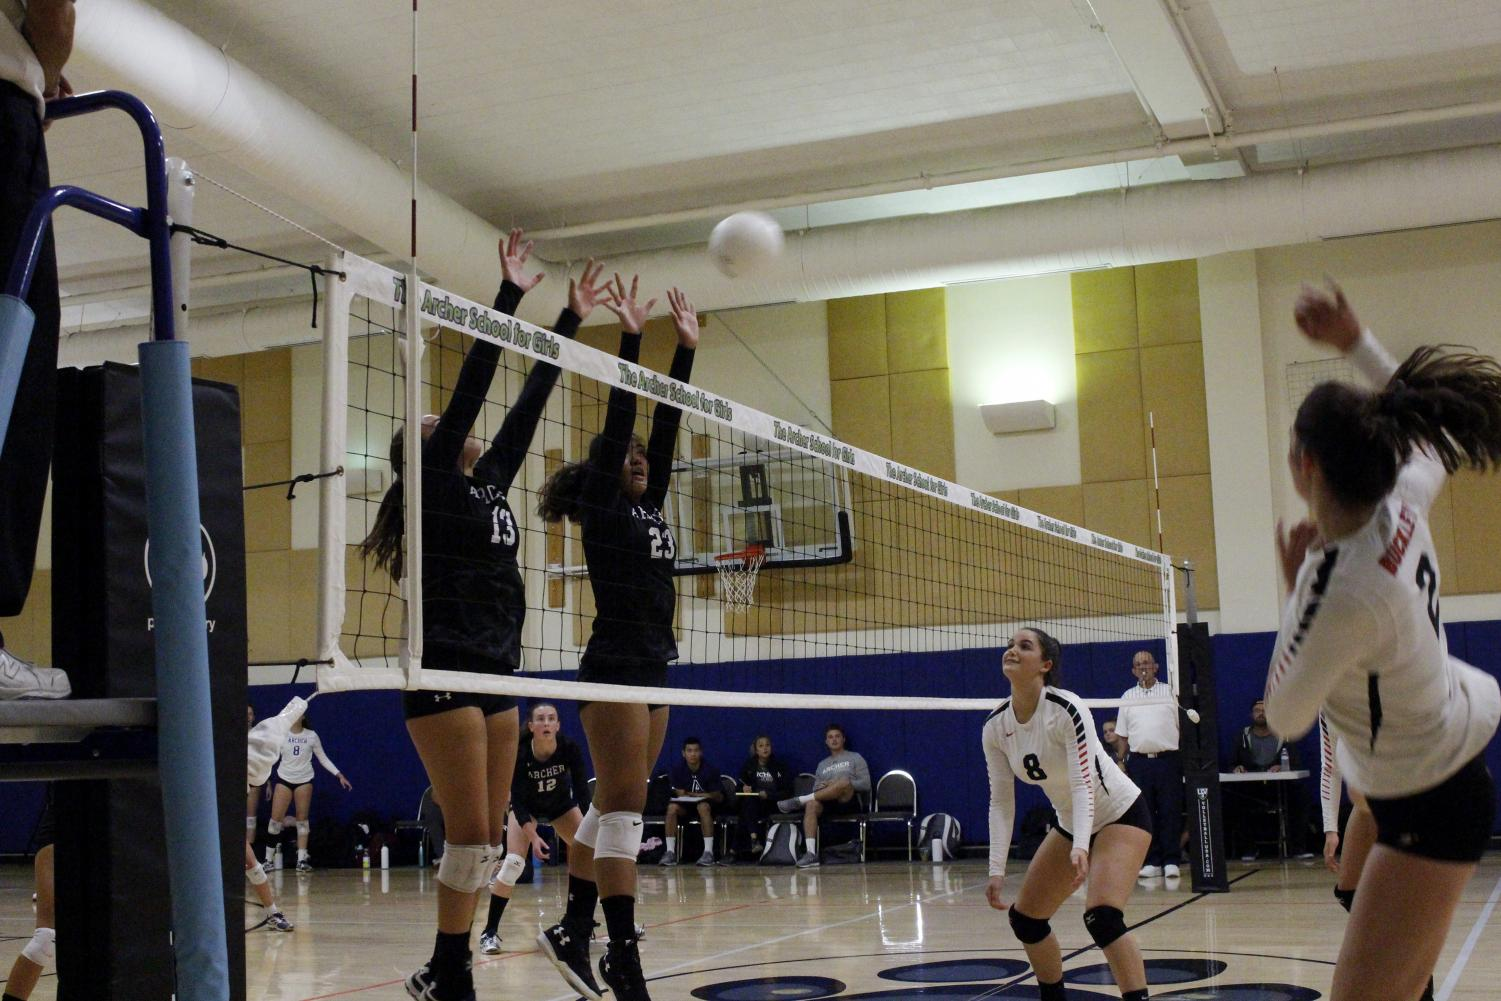 Vaughn Anoa'i '22 and Bella Morgan '21 block the ball as their opponent hits it over the net. The varsity volleyball team will move on to the next round of CIF playoffs next week.